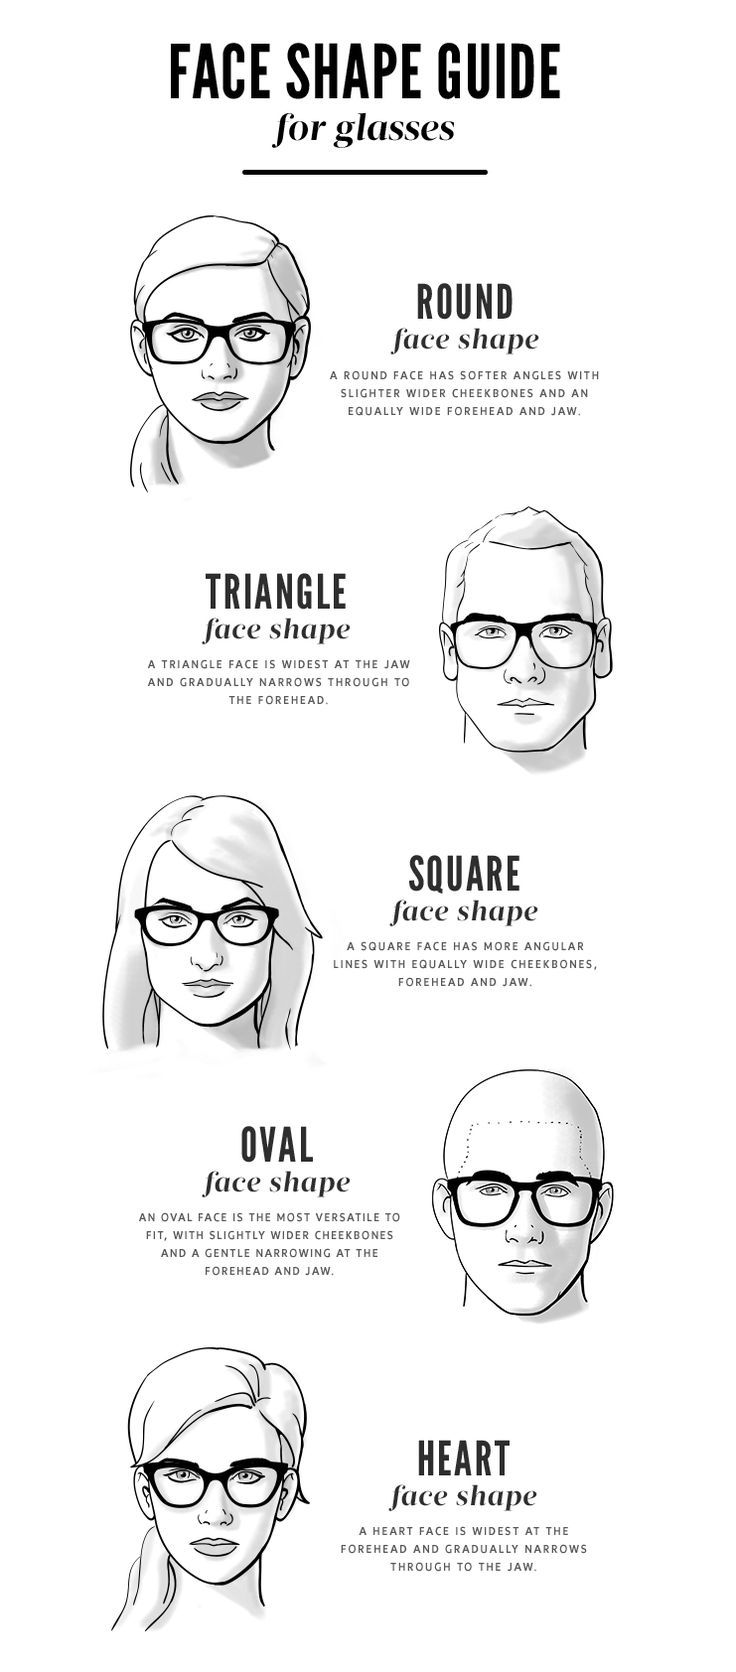 Eyeglass Frame Shapes For Oval Faces : Face Shape Guide for Glasses Which glasses shape best ...